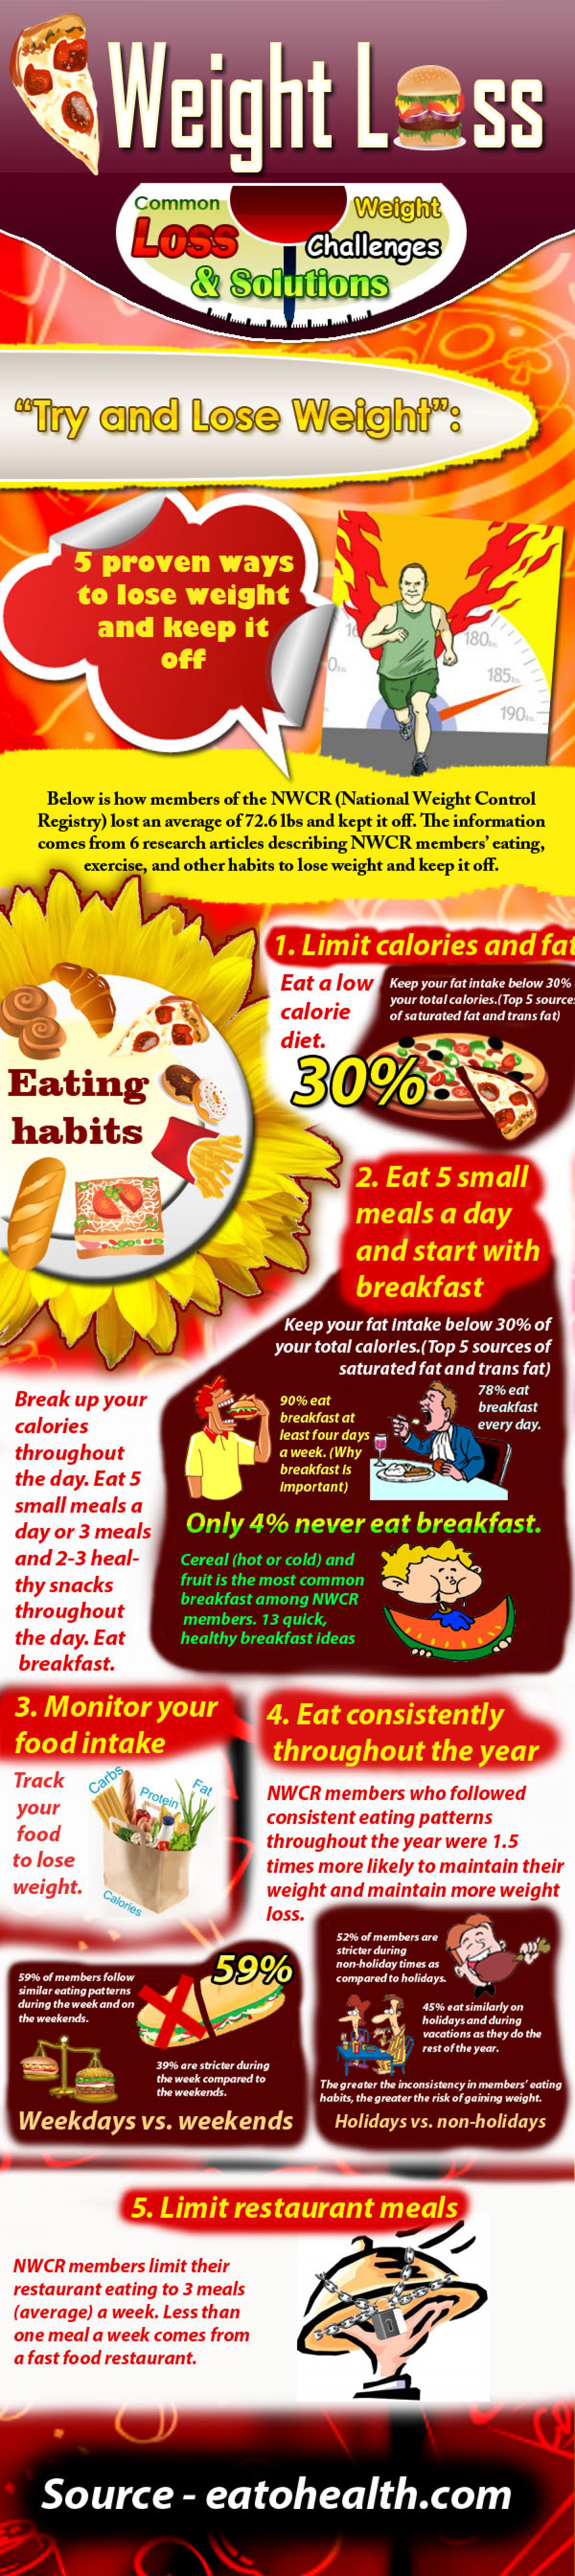 Common Weight Loss Challenges and Solutions  Infographic